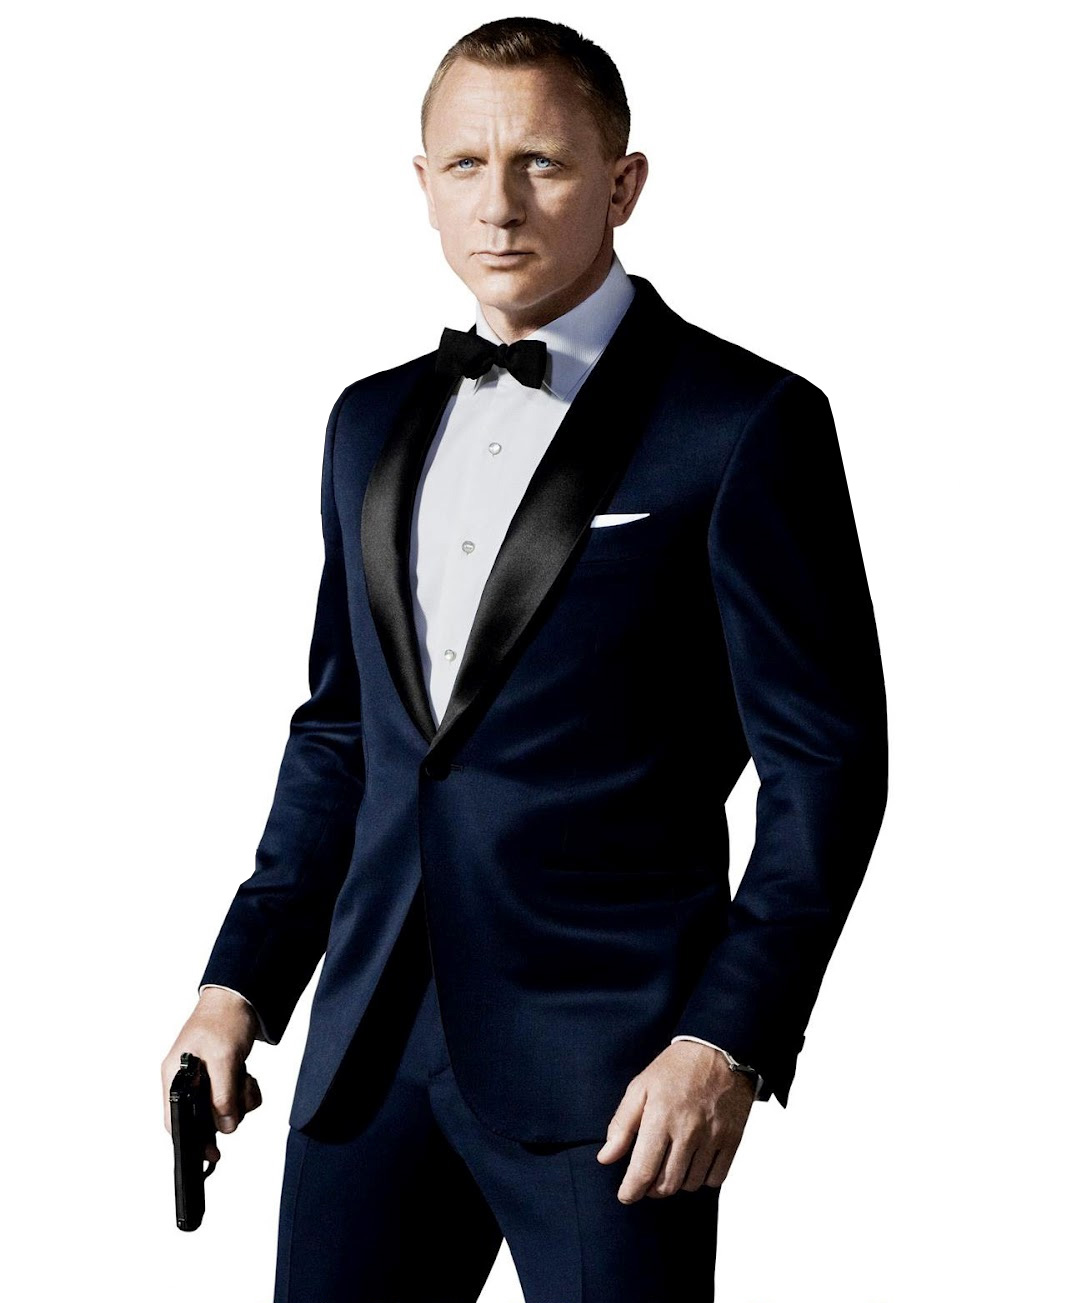 tuxedos in movies james bond s midnight blue tuxedo in skyfall